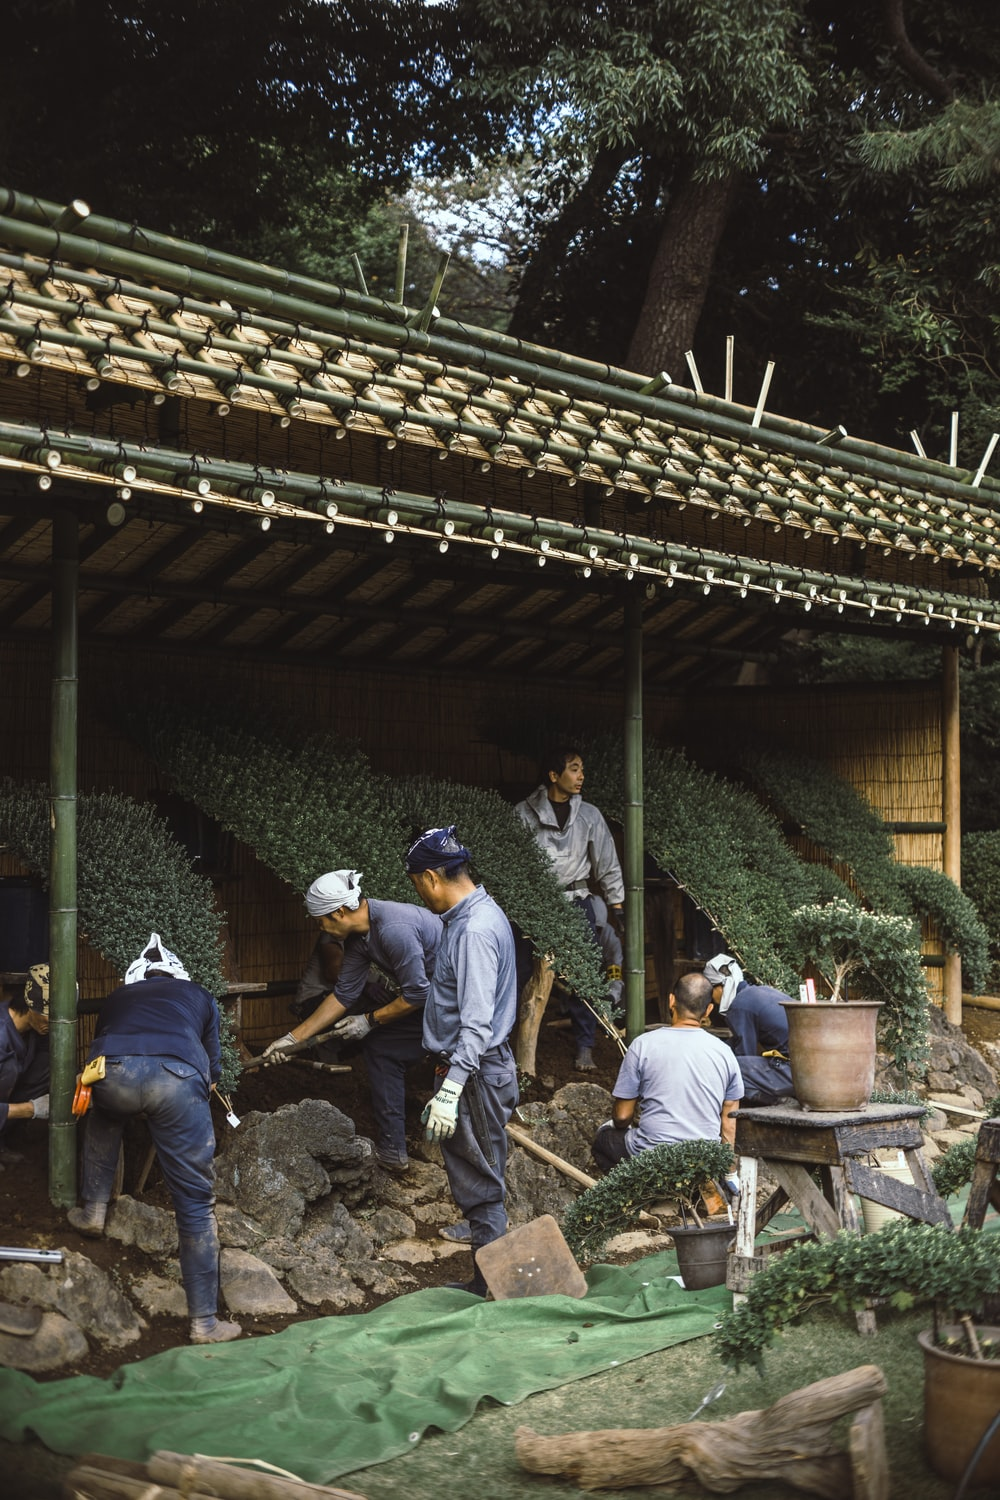 seven persons surrounded with plants